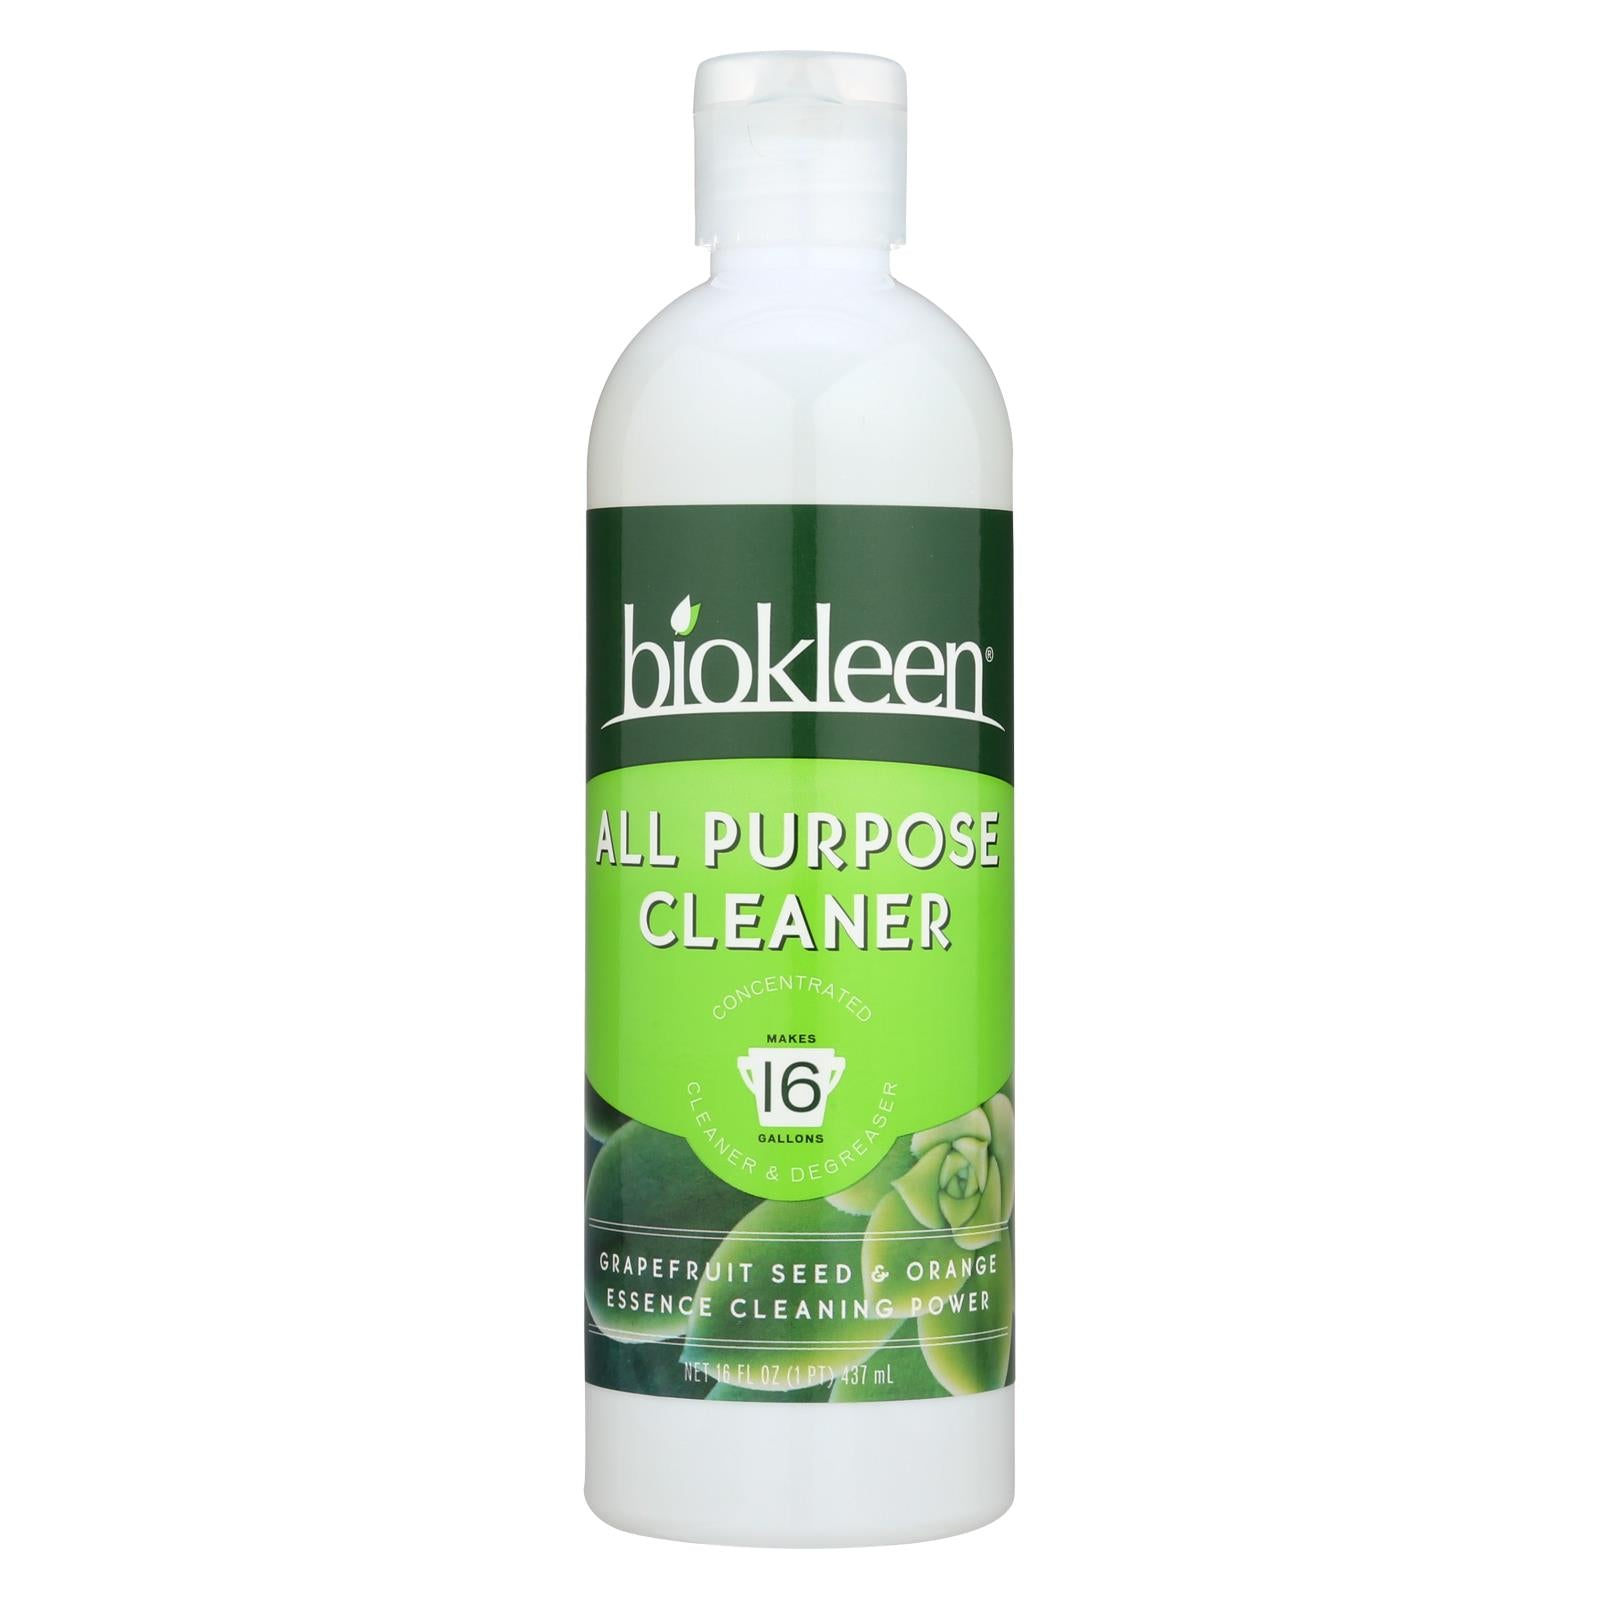 Buy Biokleen Super Concentrated All Purpose Cleaner - 16 fl oz - Household Cleaners from Veroeco.com